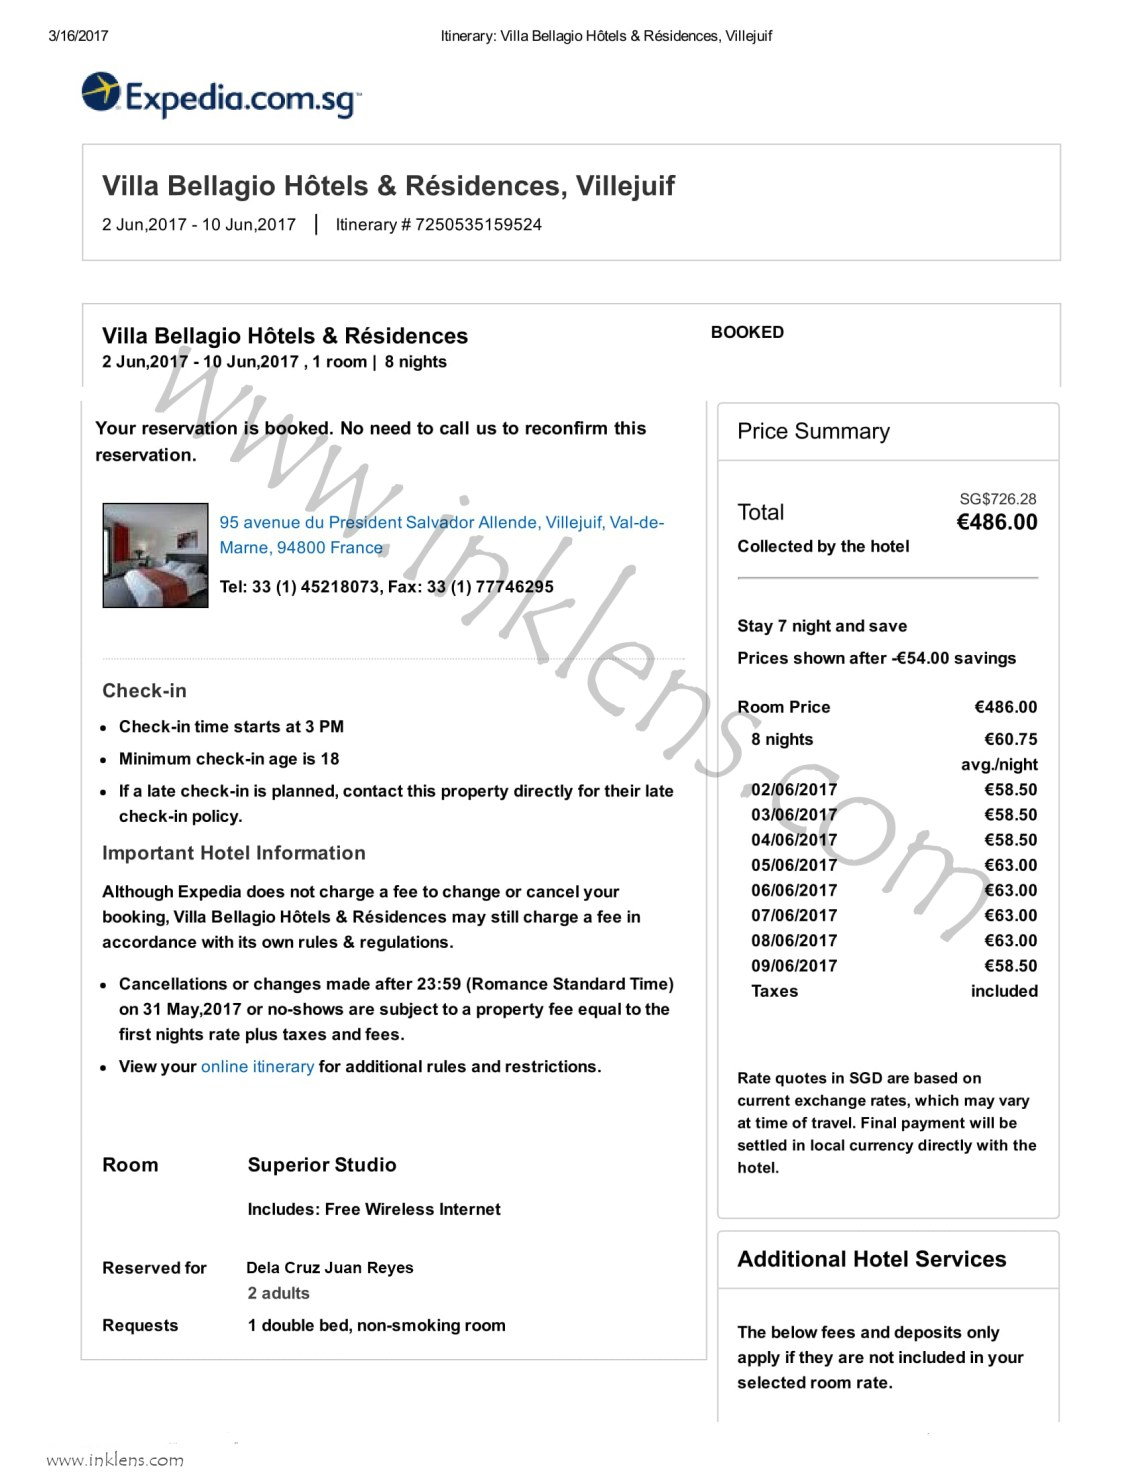 How to apply for schengen visa at french embassy in singapore and 7 flight reservationbooking with confirmed dates some airlines allow flight reservation for two to three days but the visa processing requires a week altavistaventures Images